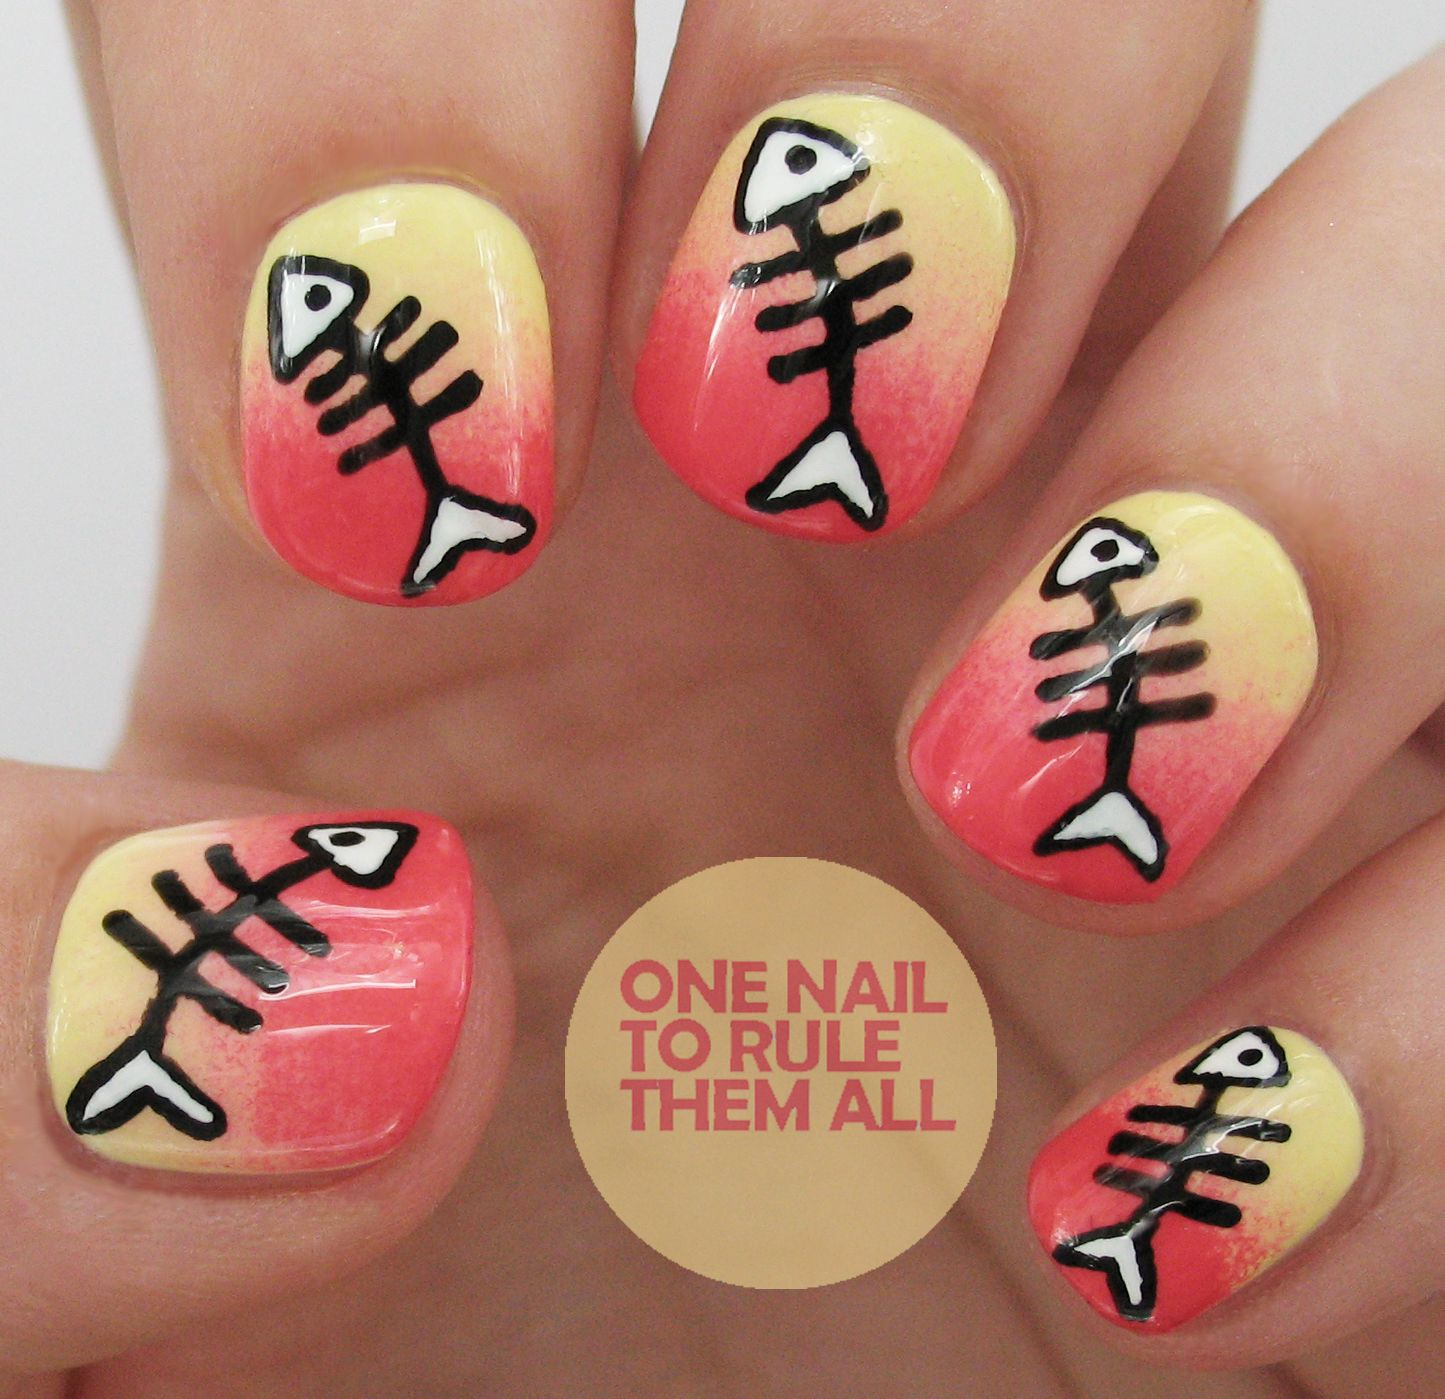 nail art fishing | Fish Bones + Tutorial - Nail Art Fishing Fish Bones + Tutorial Nails Pinterest